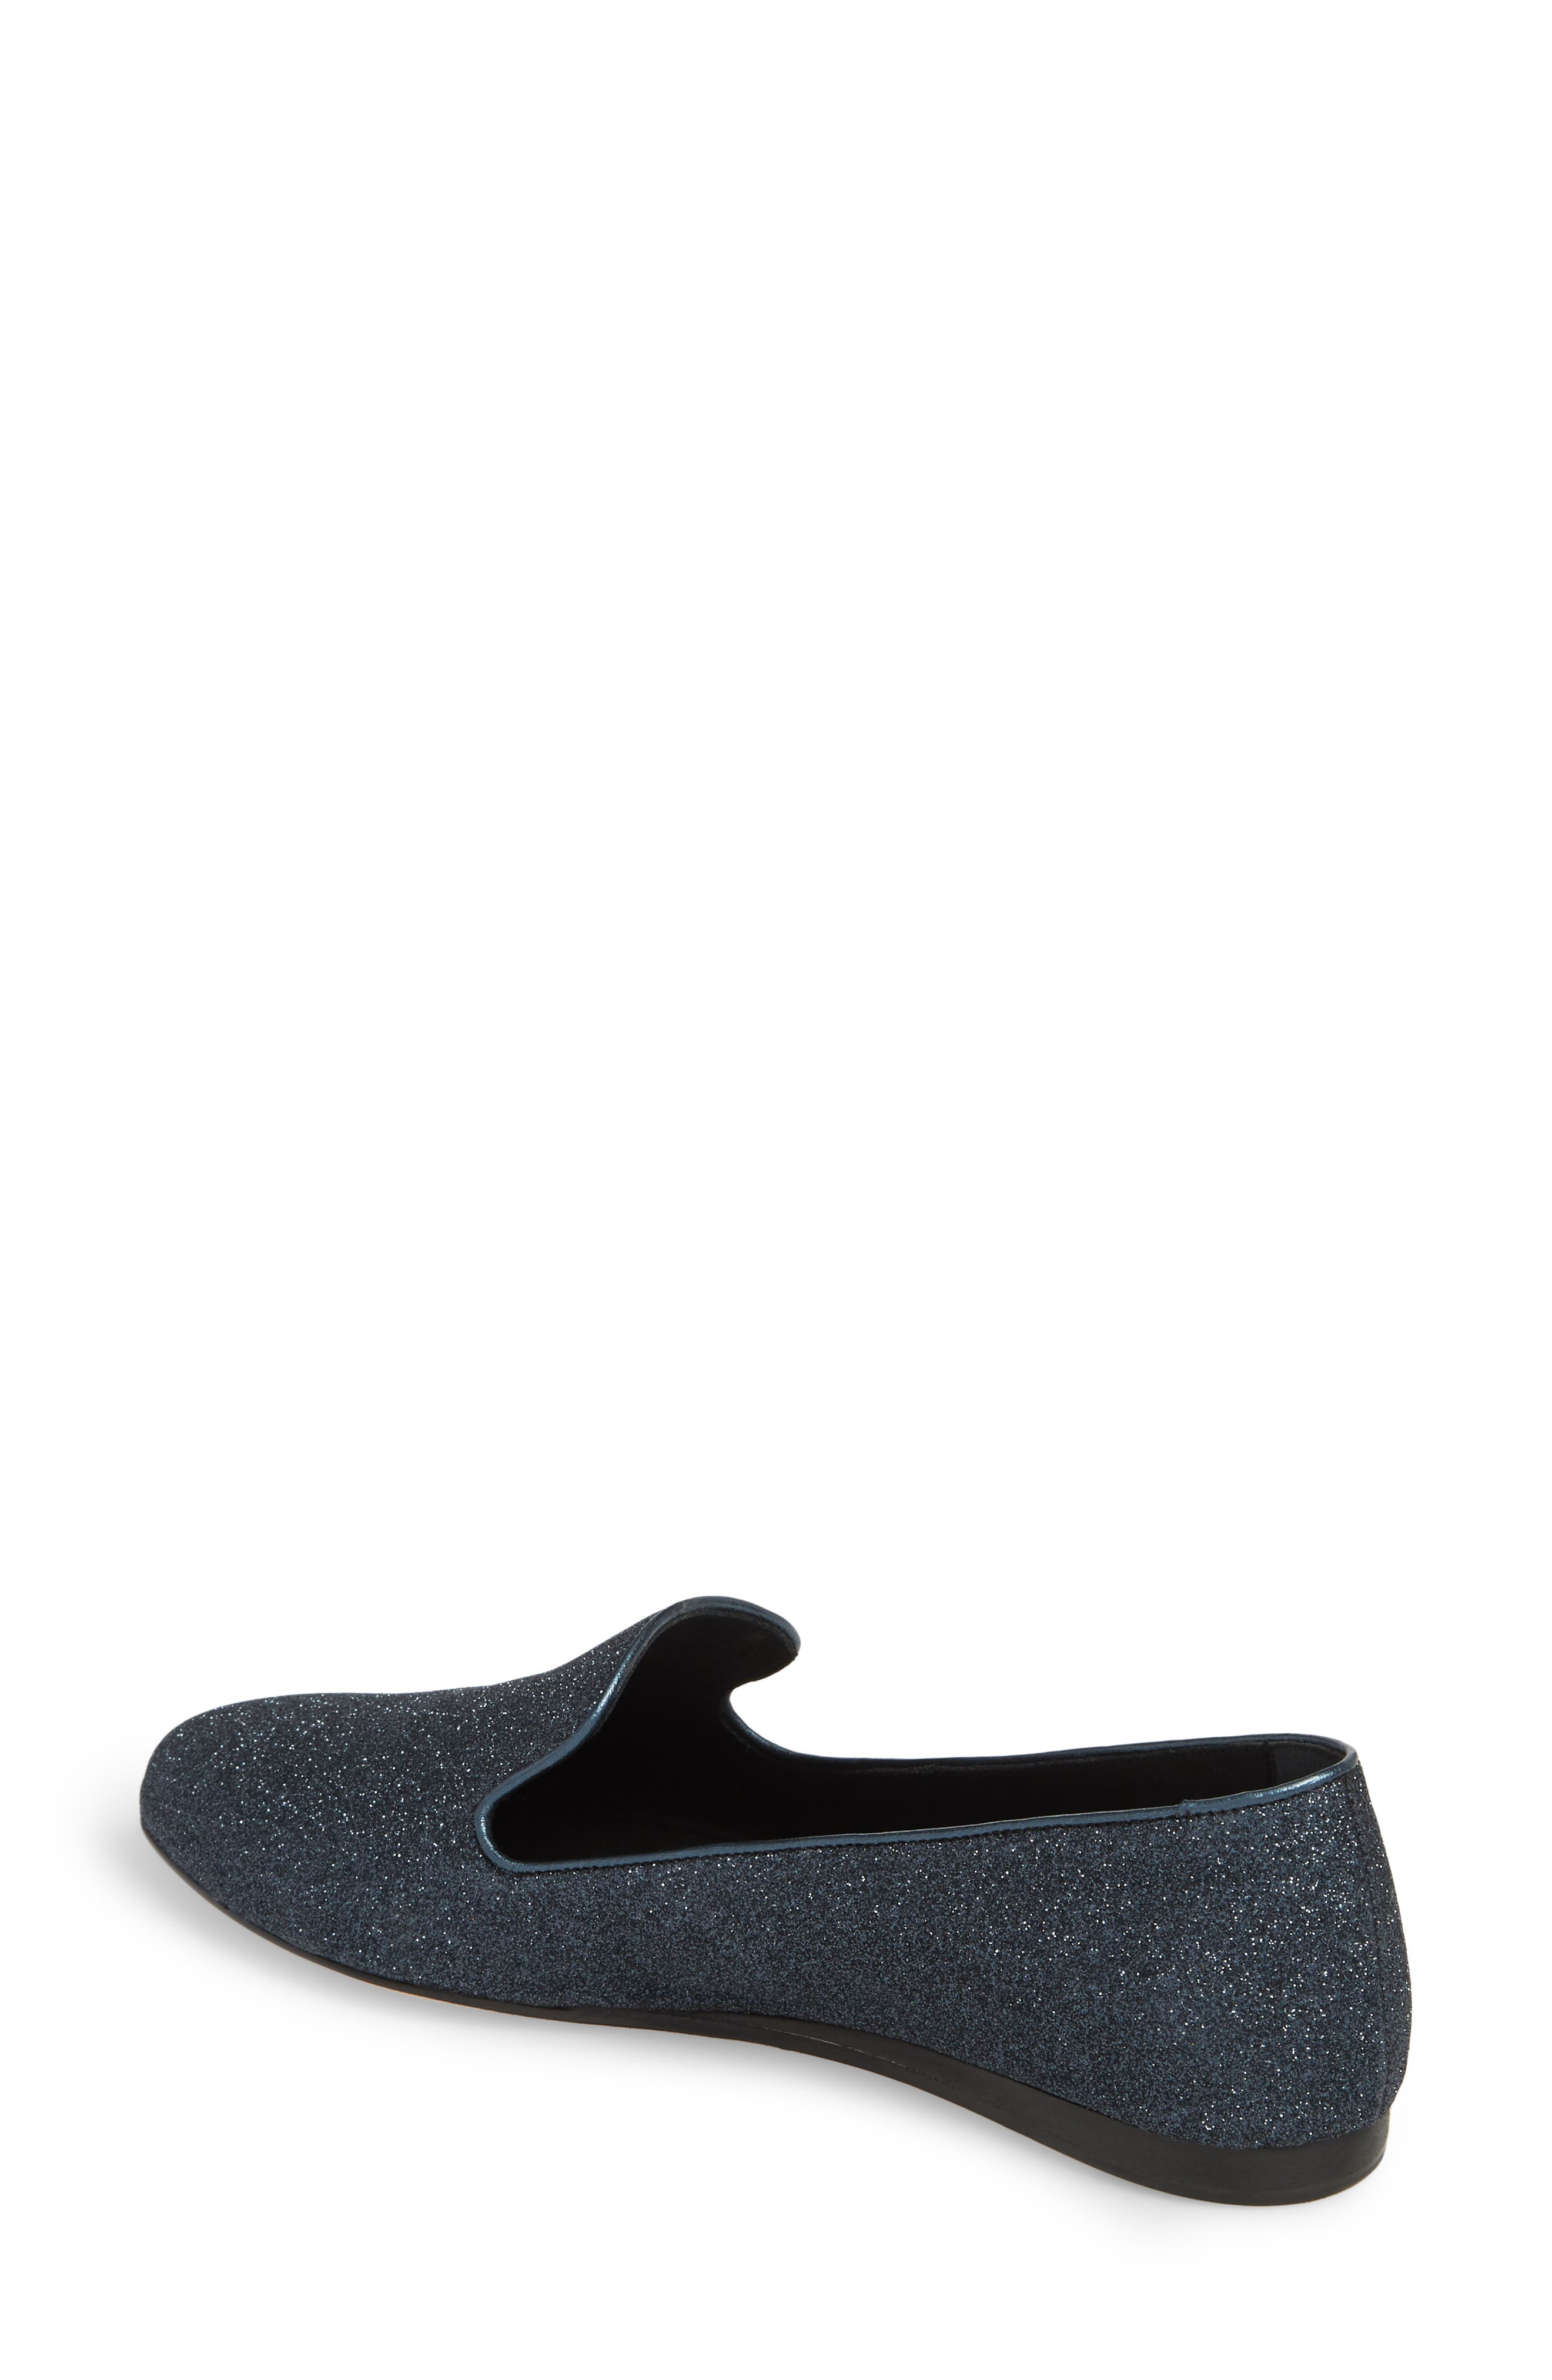 Griffin Pointy Toe Loafer,                             Alternate thumbnail 2, color,                             Midnight